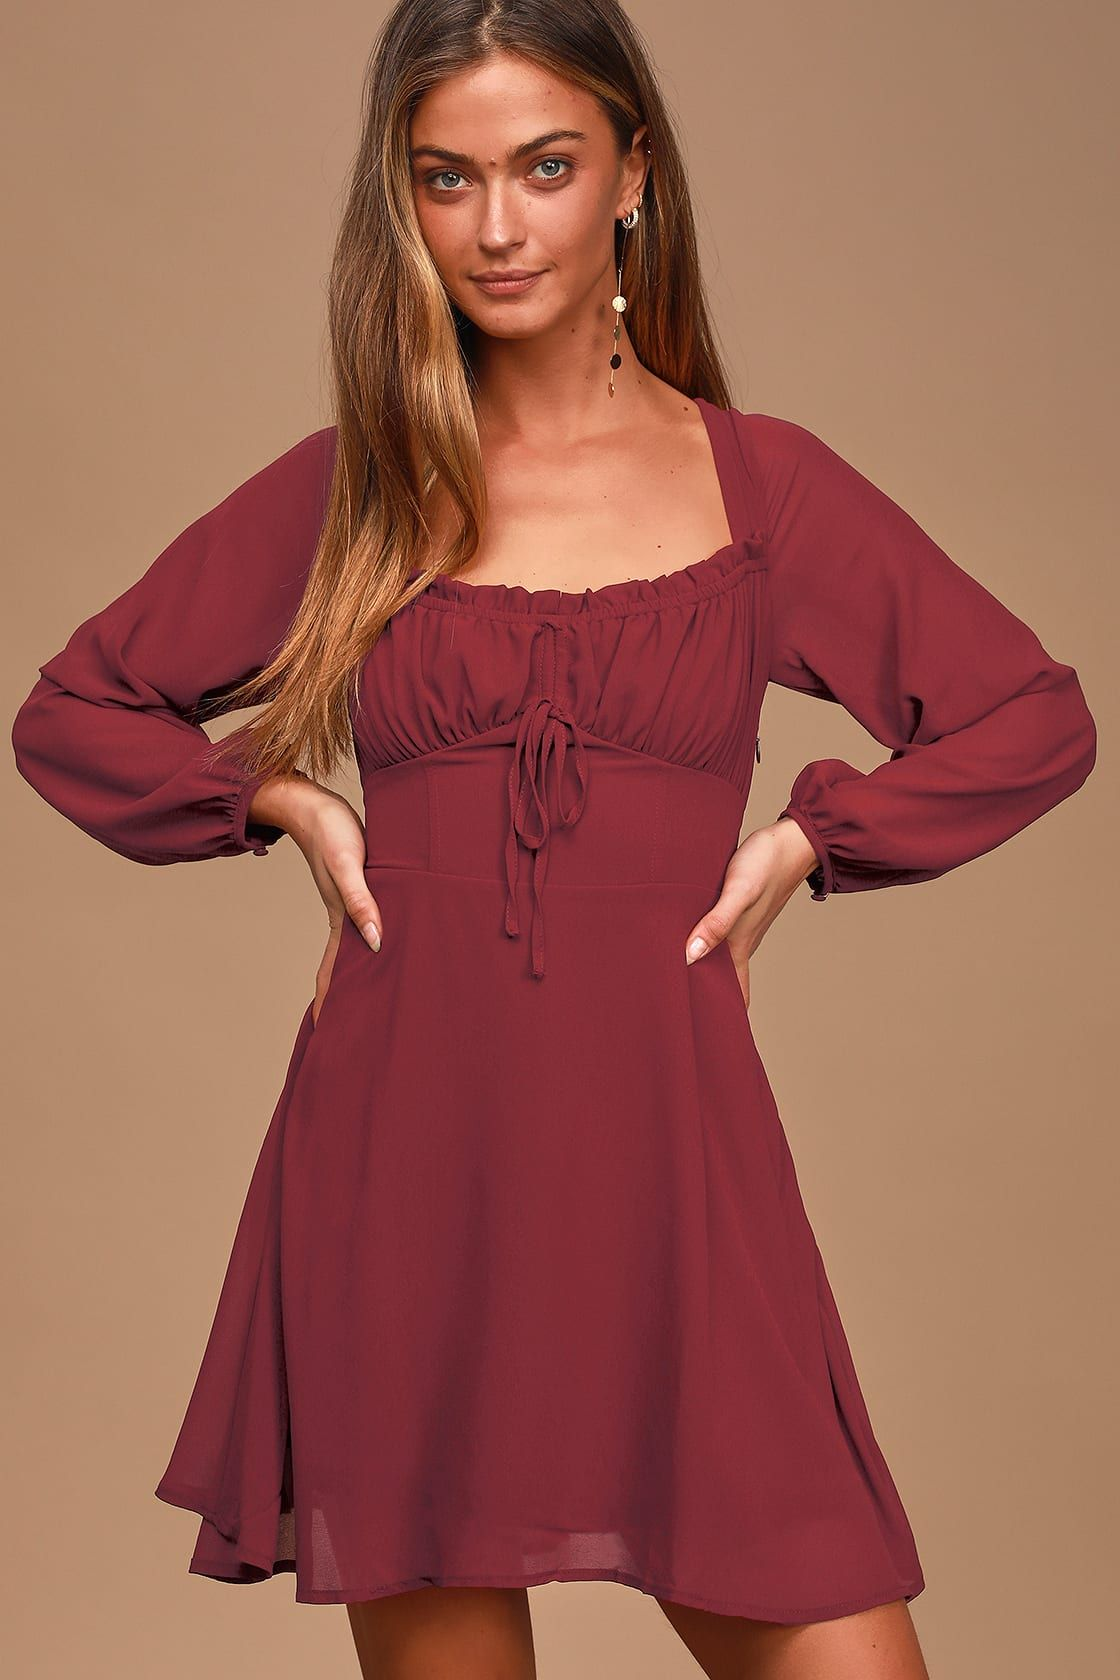 Lovely Day Wine Red Chiffon Long Sleeve Mini Dress Chiffon Long Sleeve Red Long Sleeve Dress Wine Red Dresses Long [ 1680 x 1120 Pixel ]